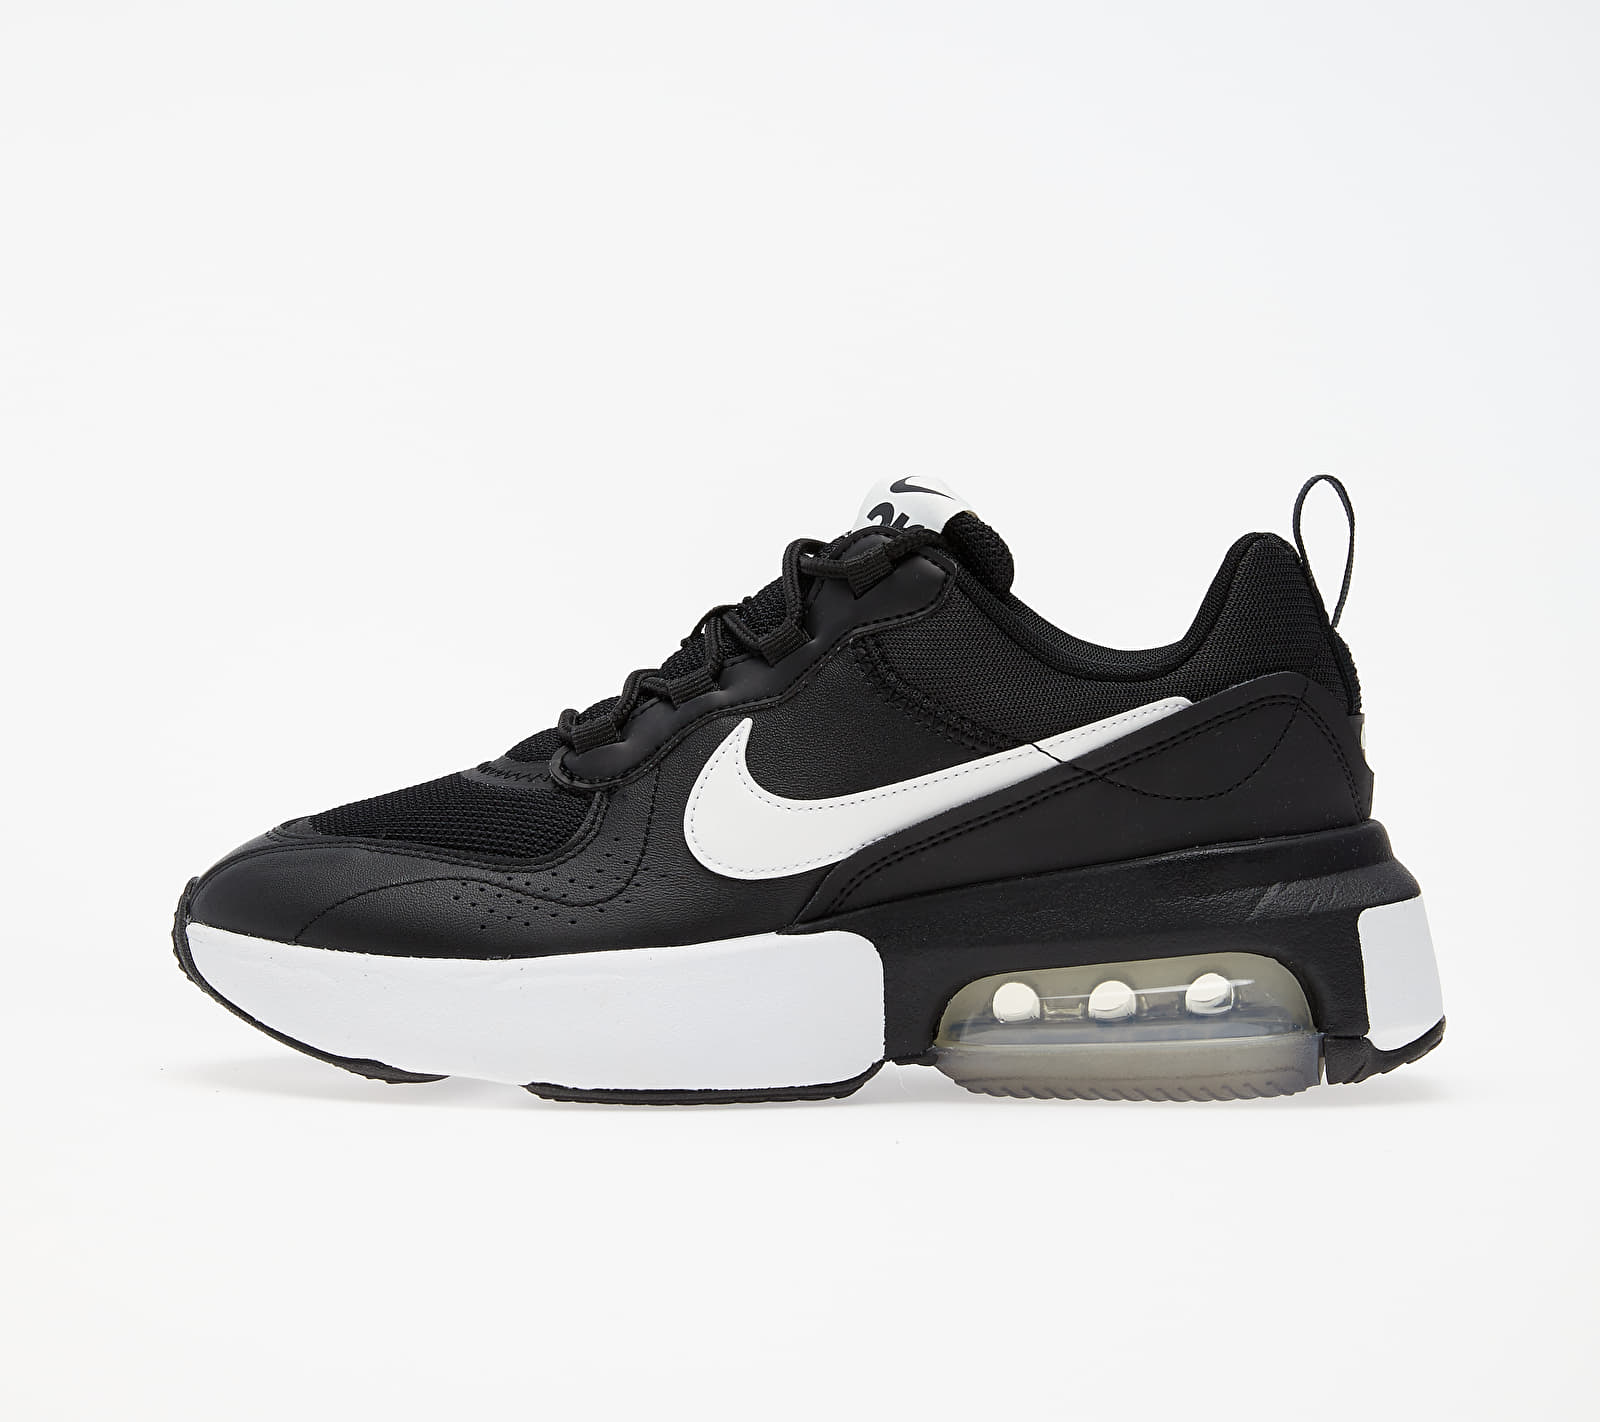 Nike W Air Max Verona Black/ Summit White-Anthracite EUR 38.5